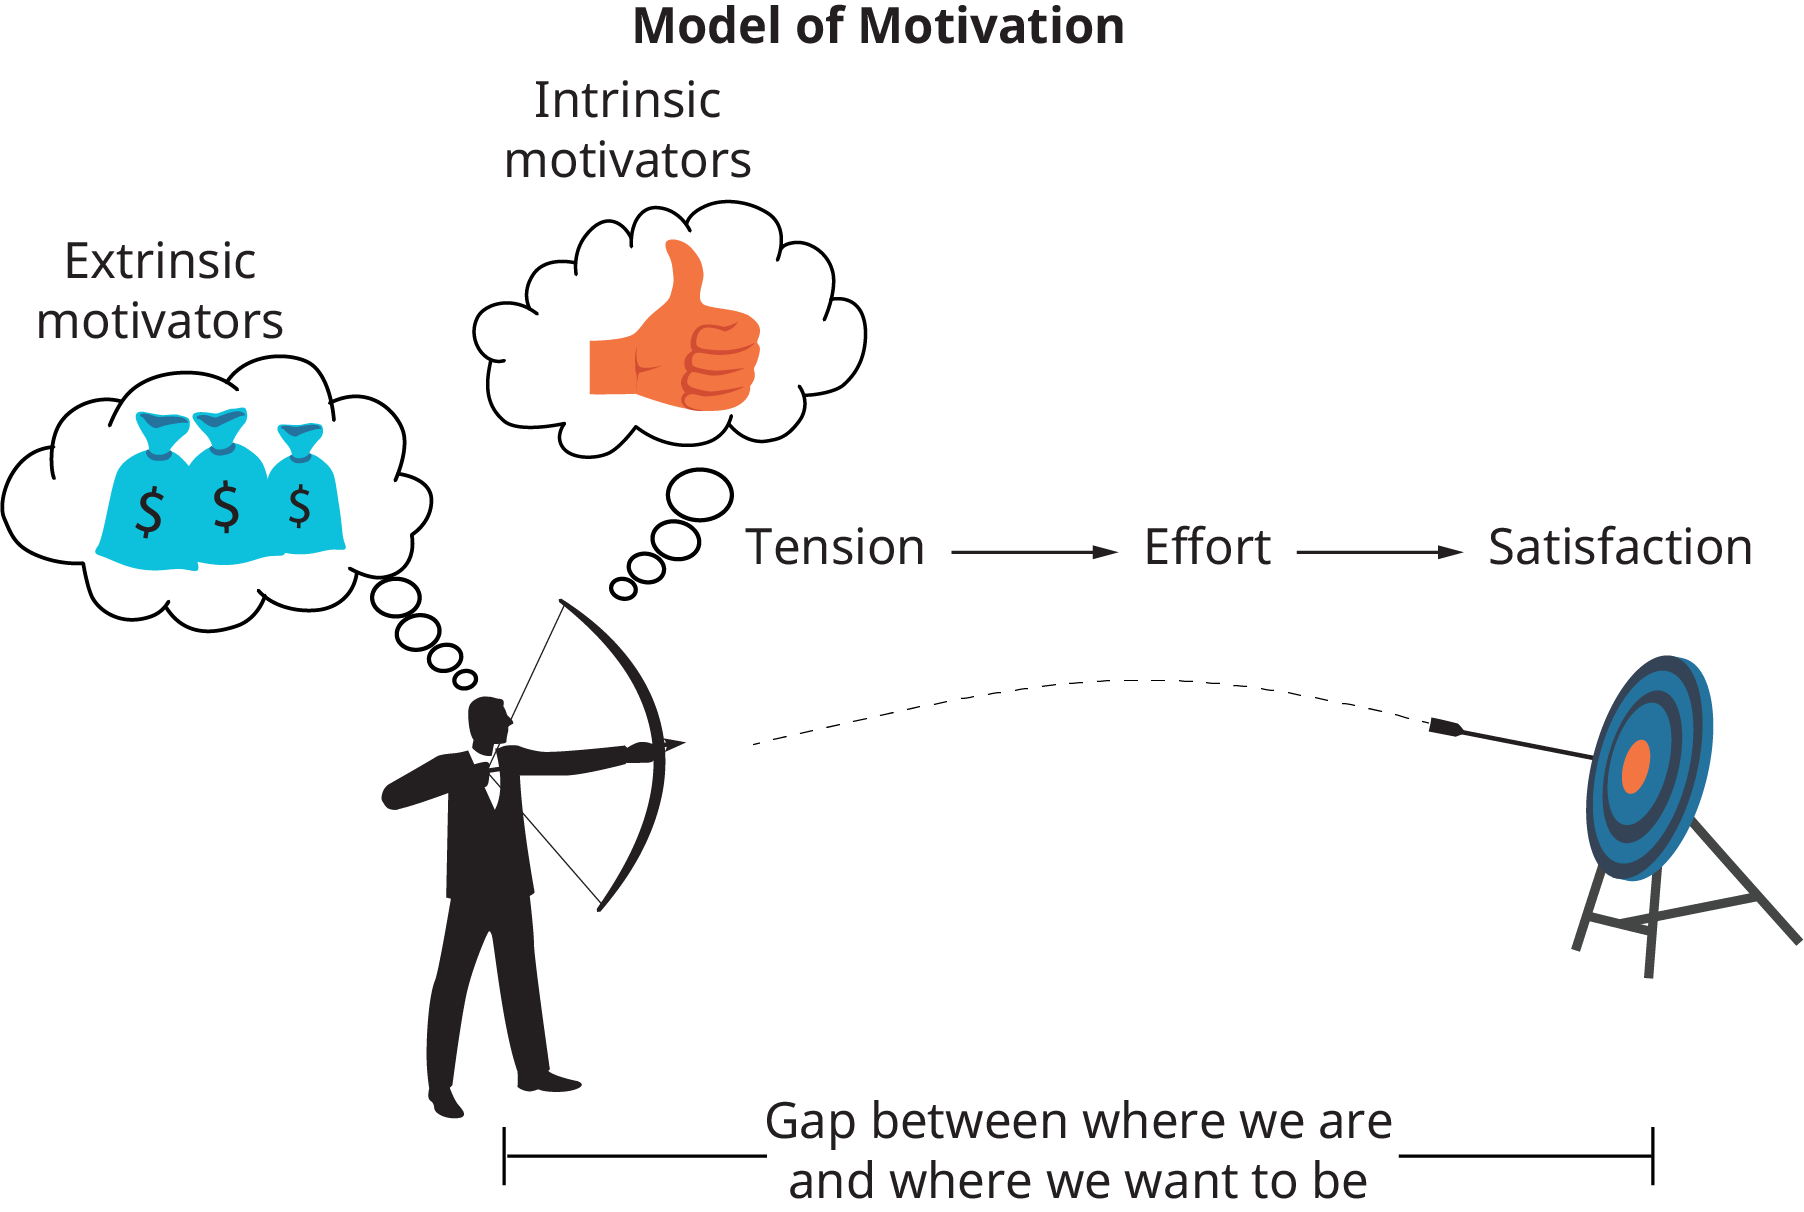 The illustration shows a man holding a bow and arrow; it is aimed at a target. There are 2 thought bubbles above the man; the first is extrinsic motivators, shown as money. The second is intrinsic motivators, shown as a thumbs up. Between the man and the target there is a bracket that reads, gap between where we are and where we and where we want to be. From left to right, the word tension flows into effort, which flows into satisfaction.